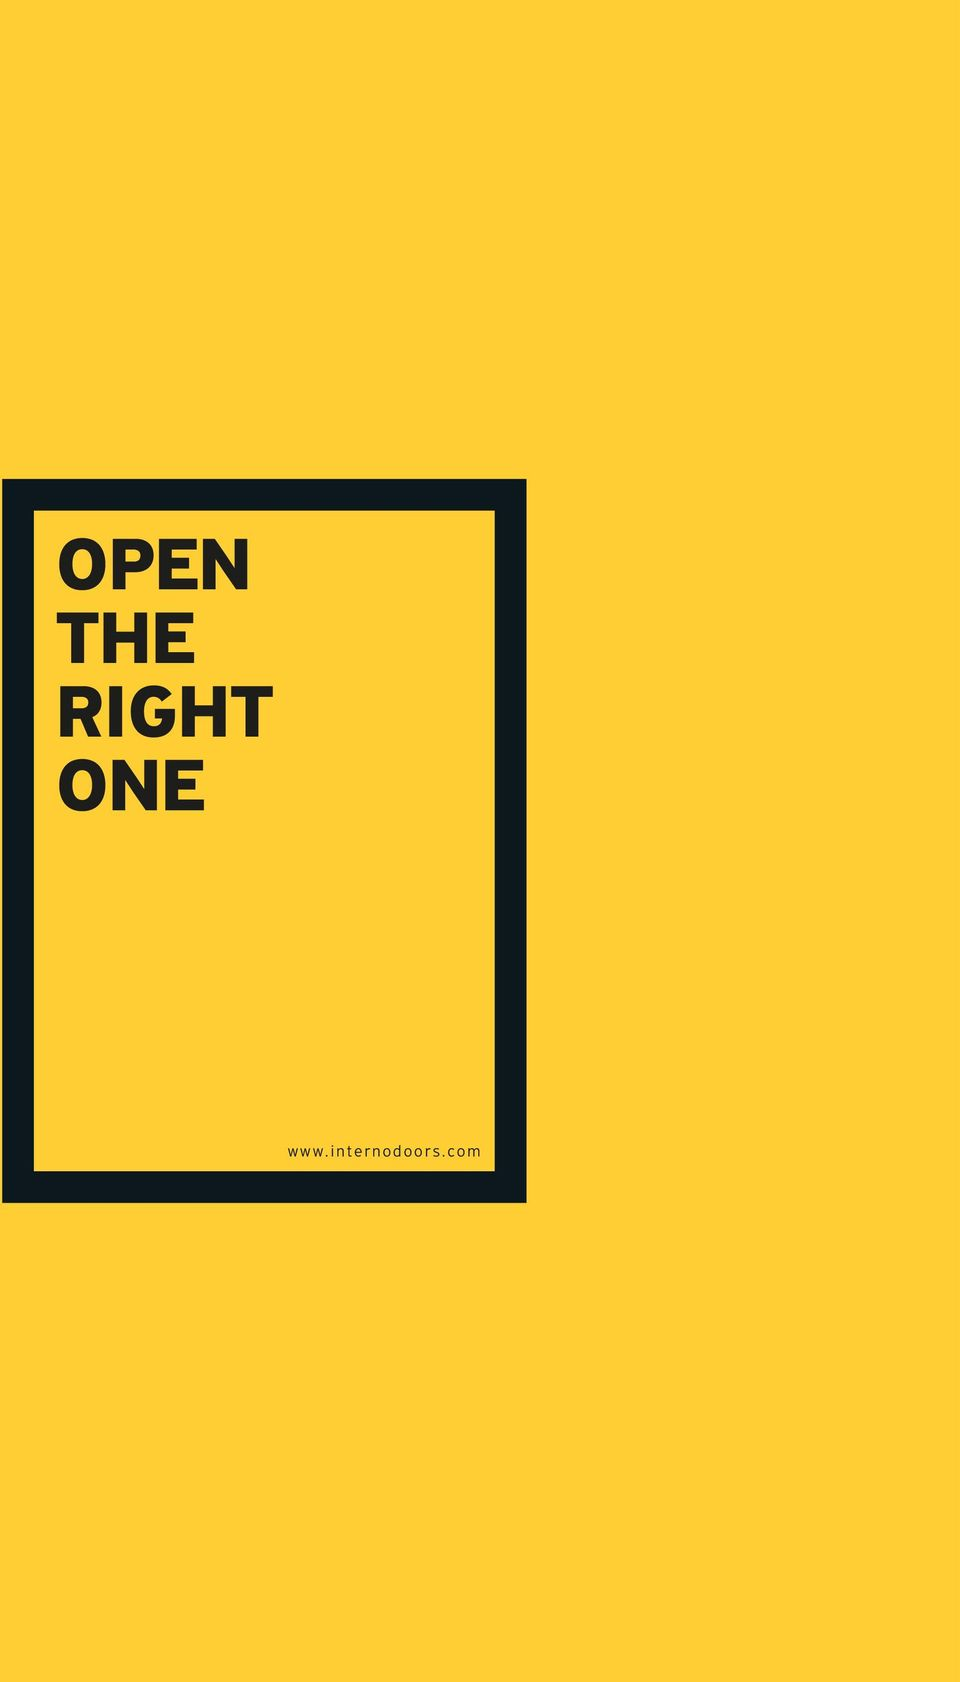 OPEN THE RIGHT